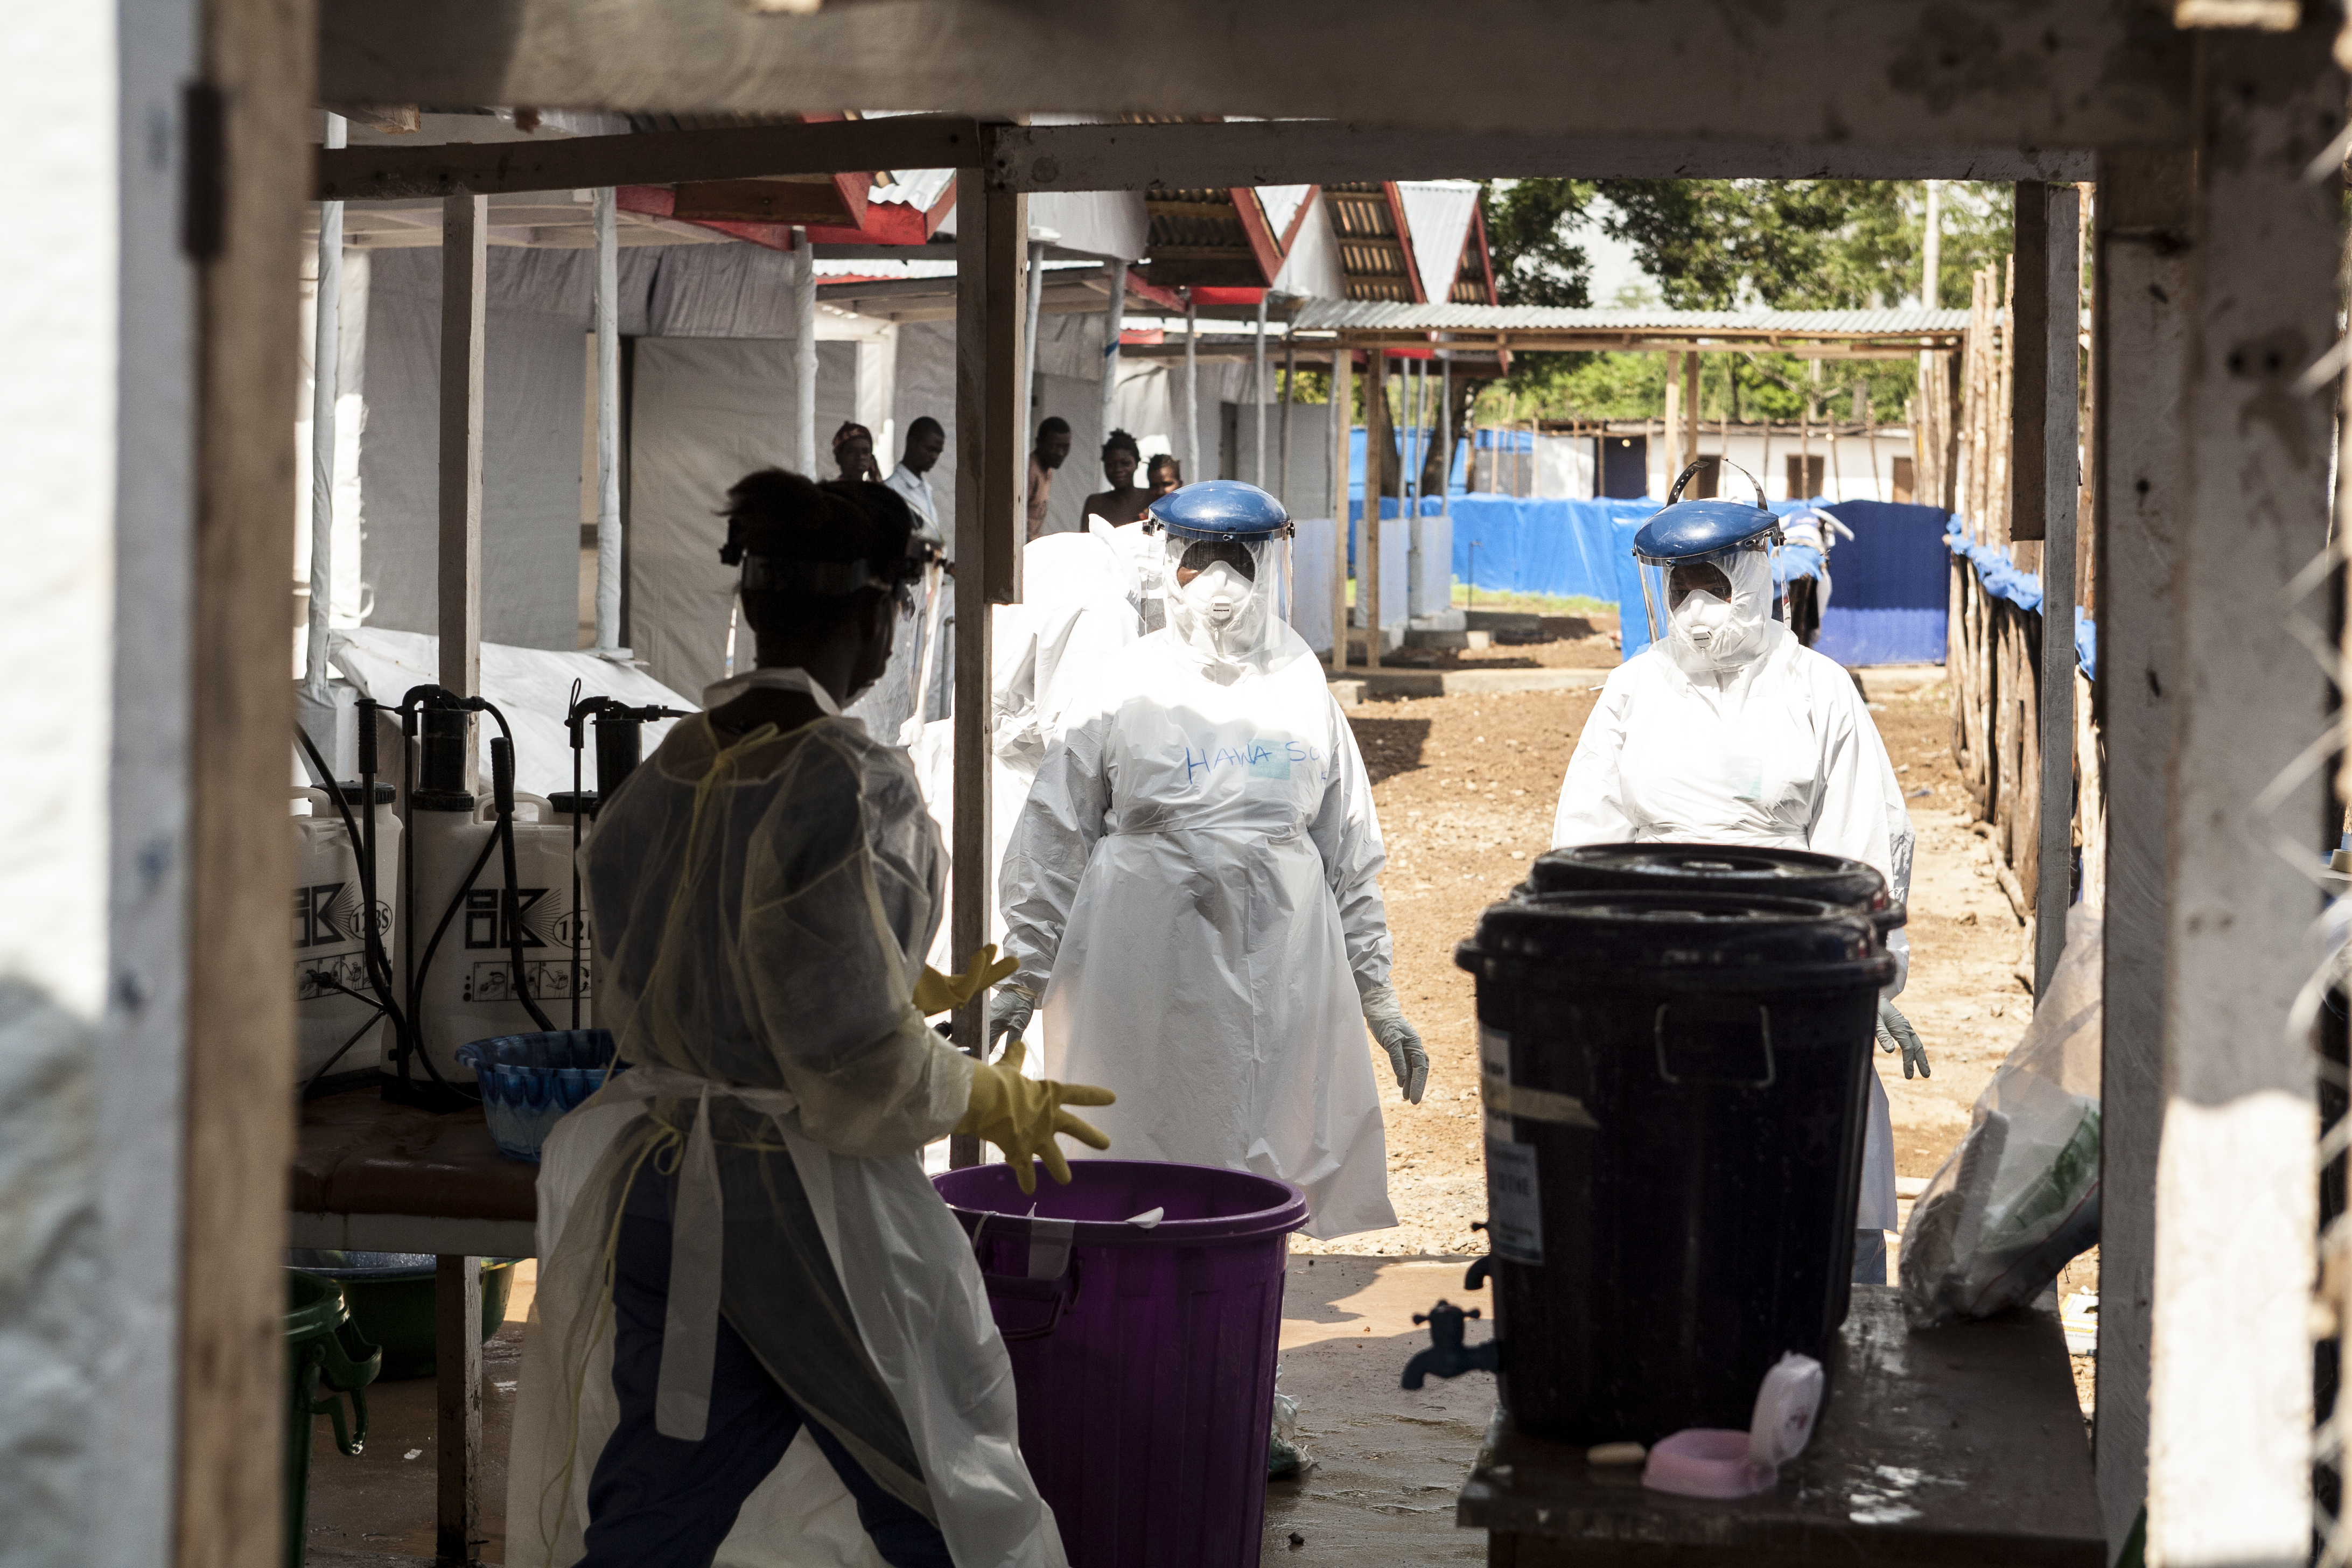 Health workers in protective garments at work in an Ebola Treatment Unit (ETU) during the 2014 crisis.